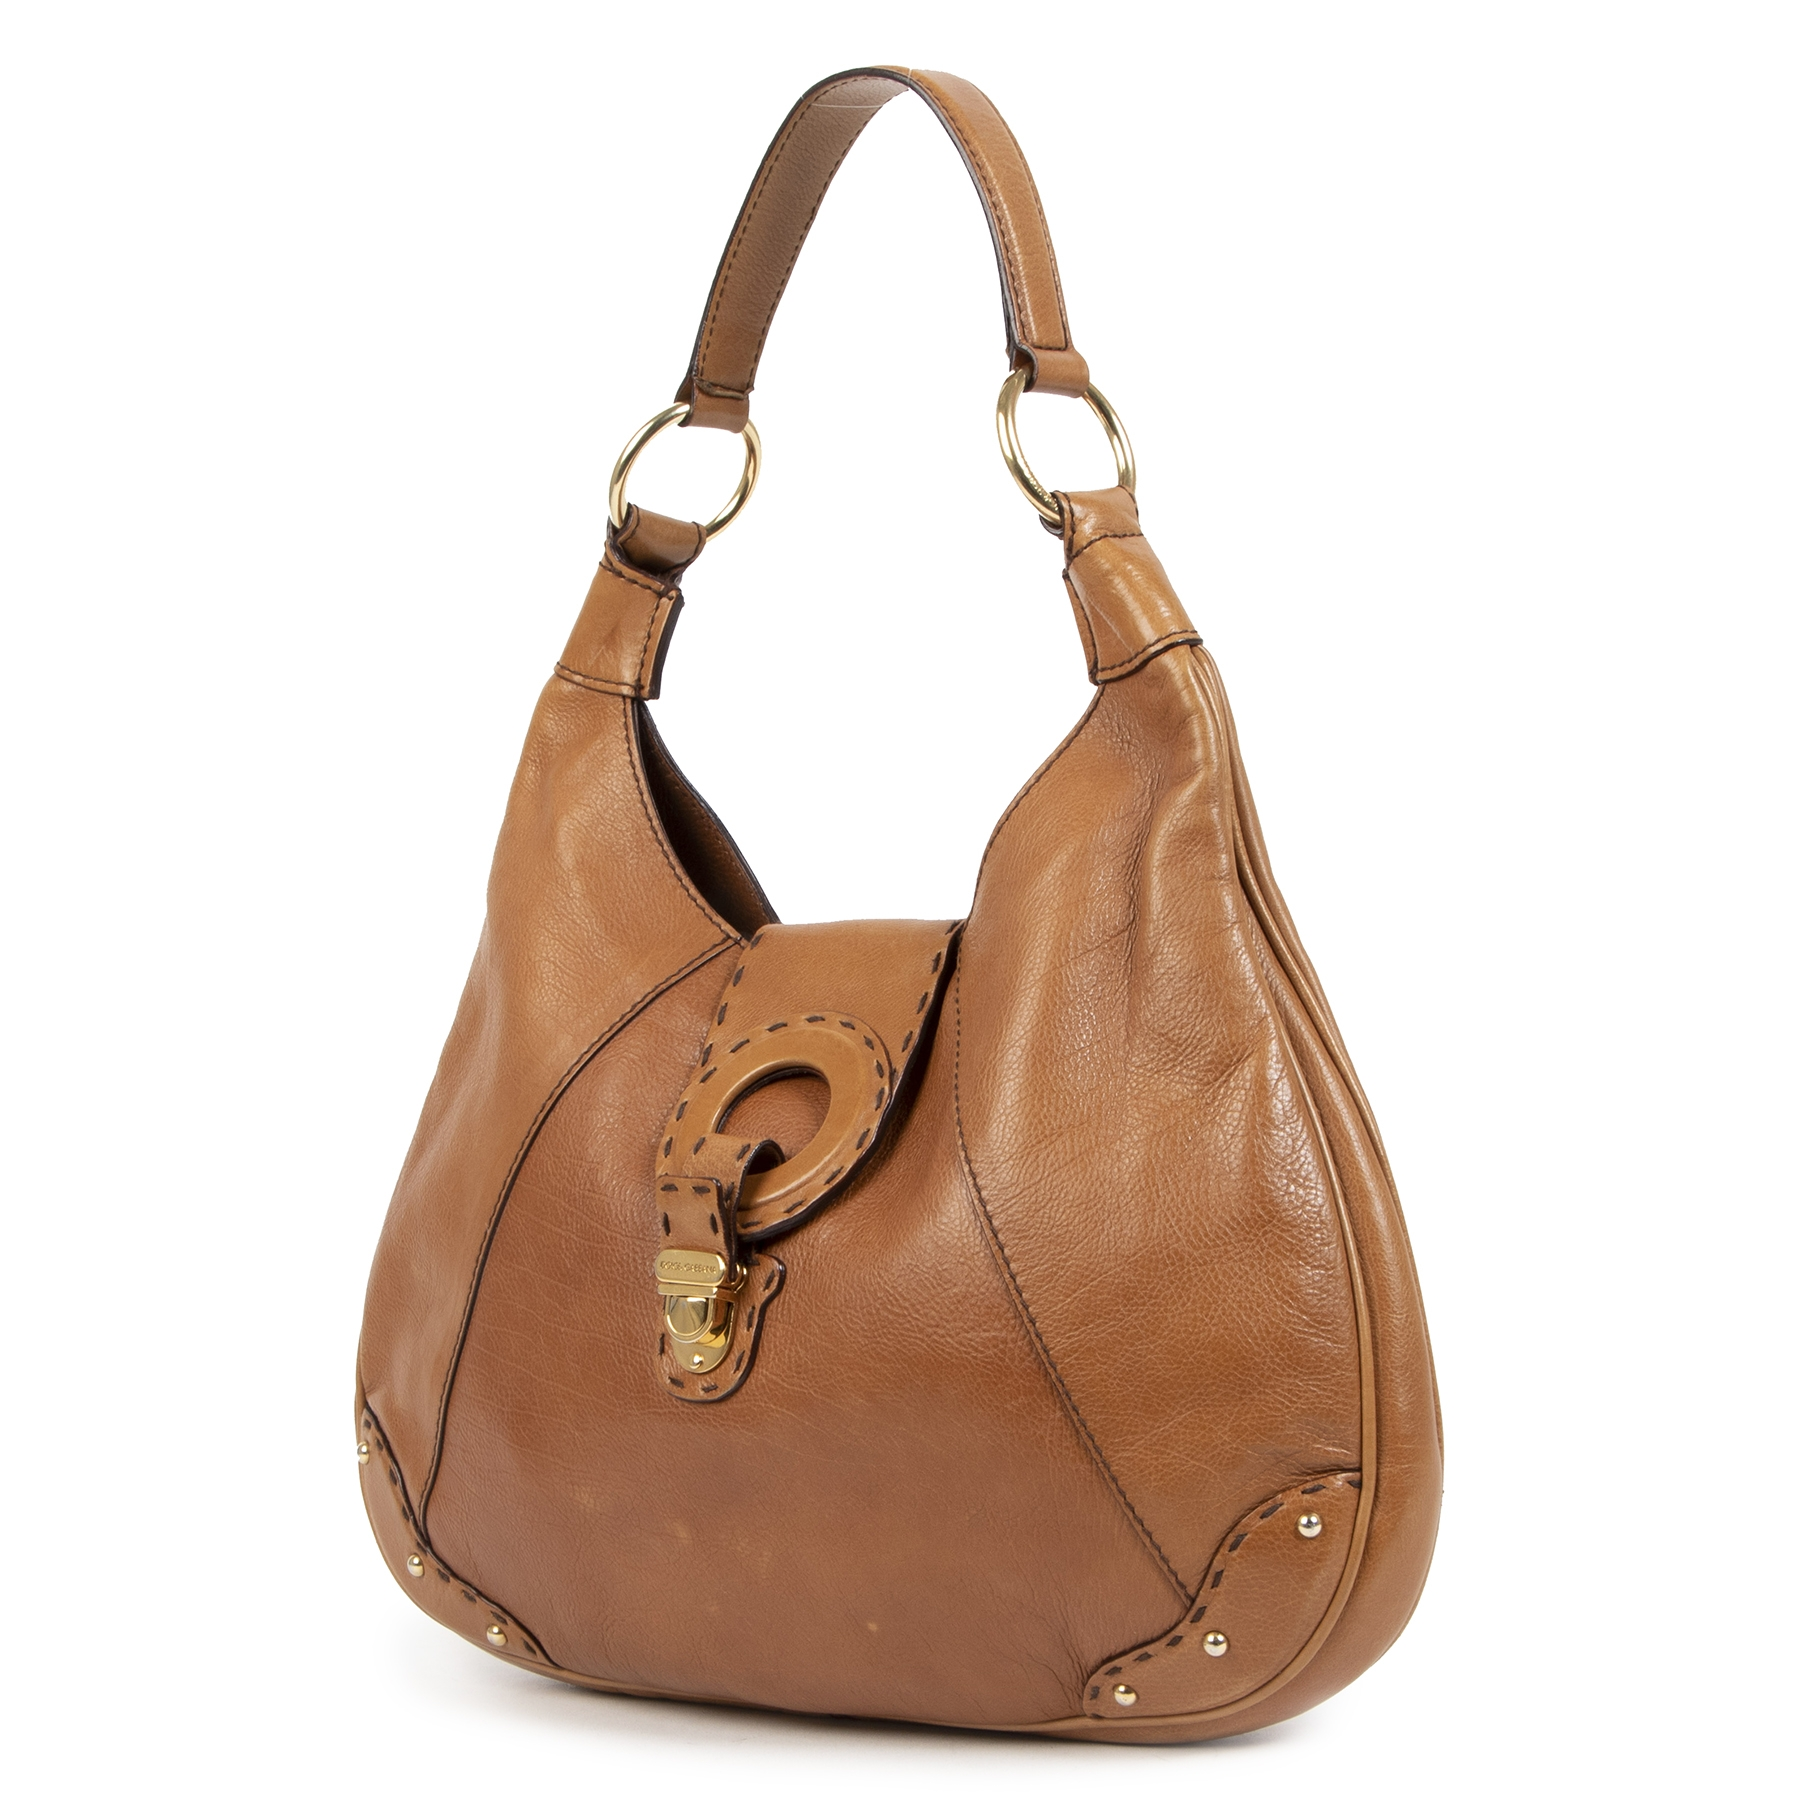 Authentique seconde-main vintage Dolce & Gabbana Camel Shoulder Bag achète en ligne webshop LabelLOV